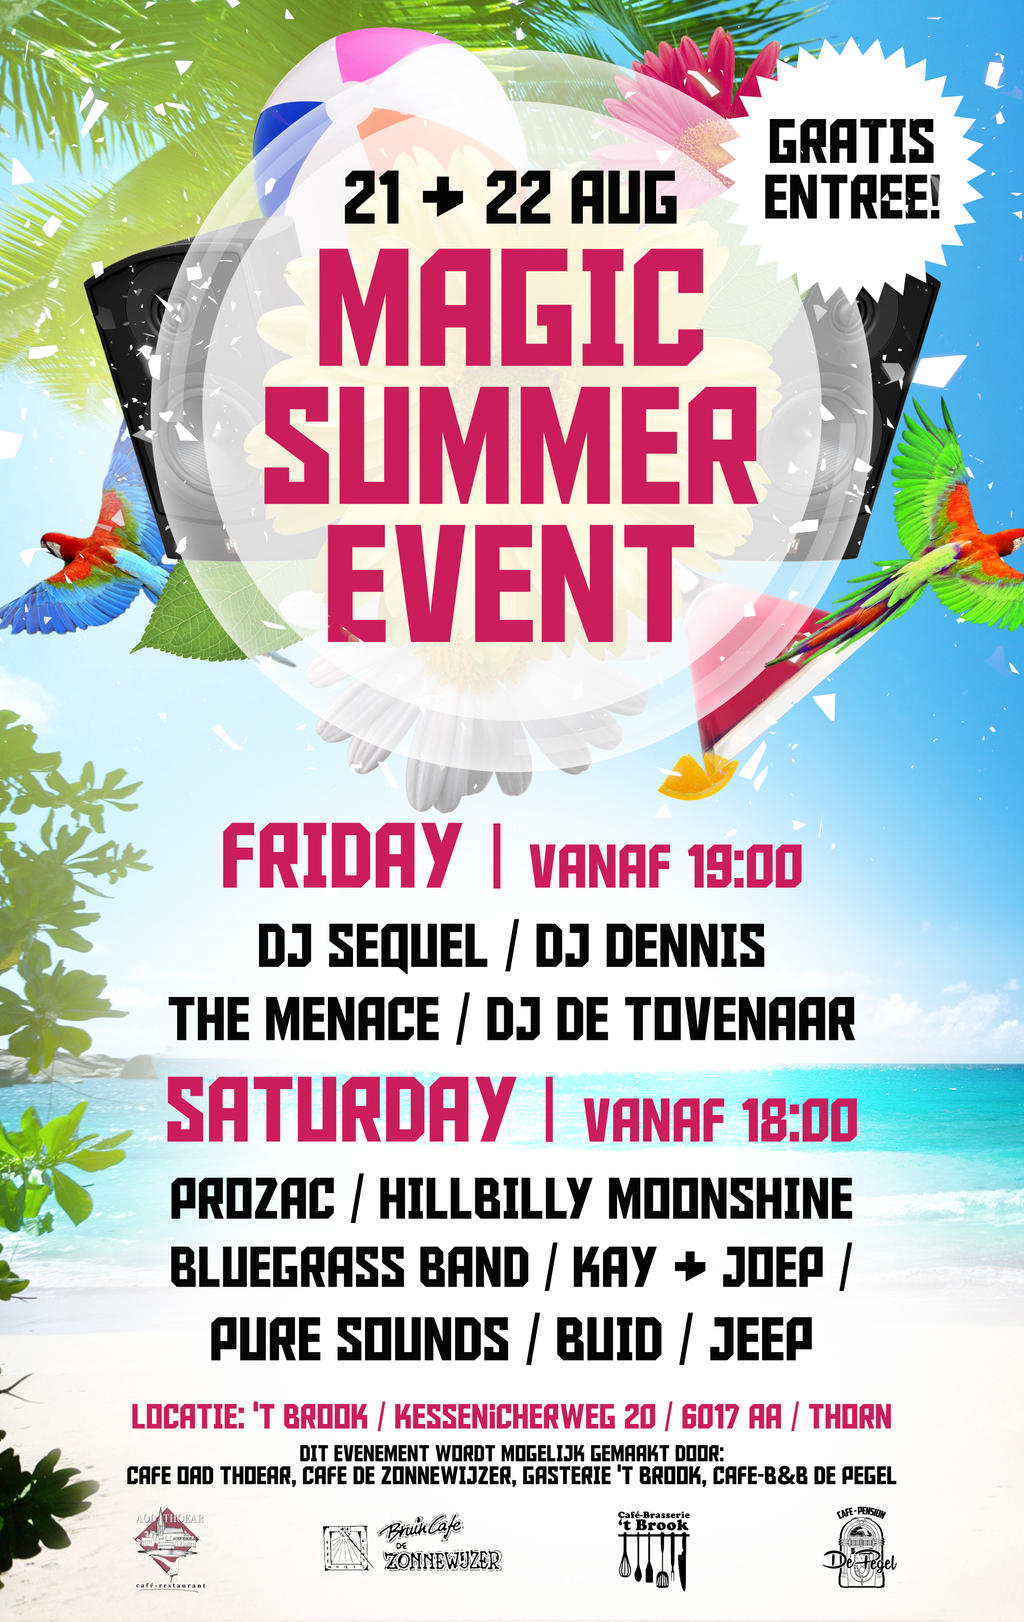 Magic Summer Event Poster By S1h4d0w On Deviantart